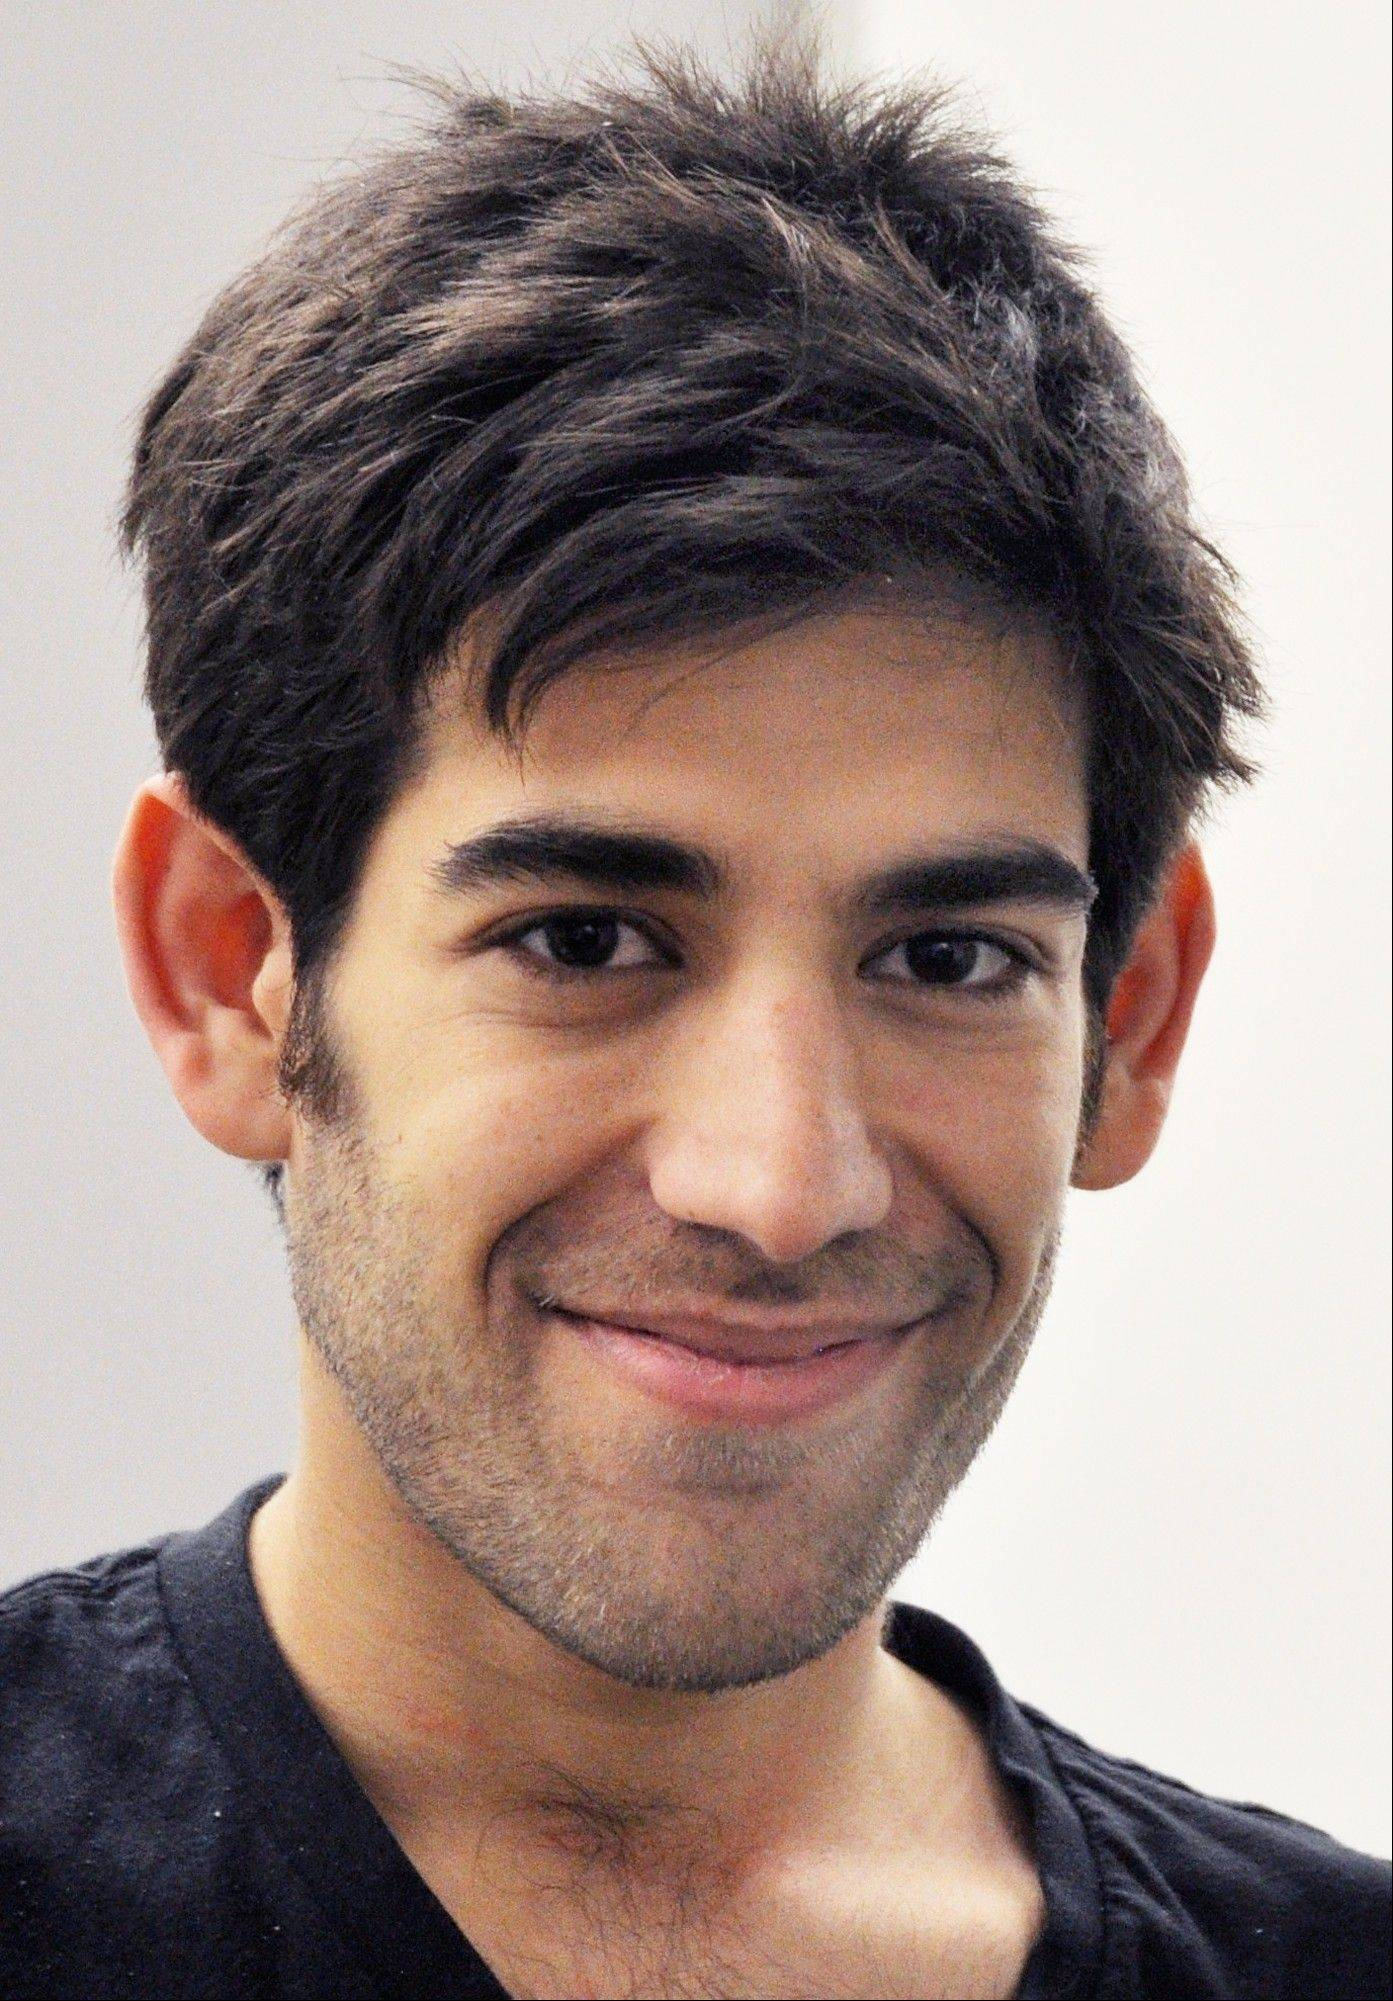 Aaron Swartz, a co-founder of Reddit, hanged himself Friday in New York City. In 2011, he was charged with stealing millions of scientific journals from a computer archive at the Massachusetts Institute of Technology in an attempt to make them freely available. He had pleaded not guilty, and his federal trial was to begin next month.